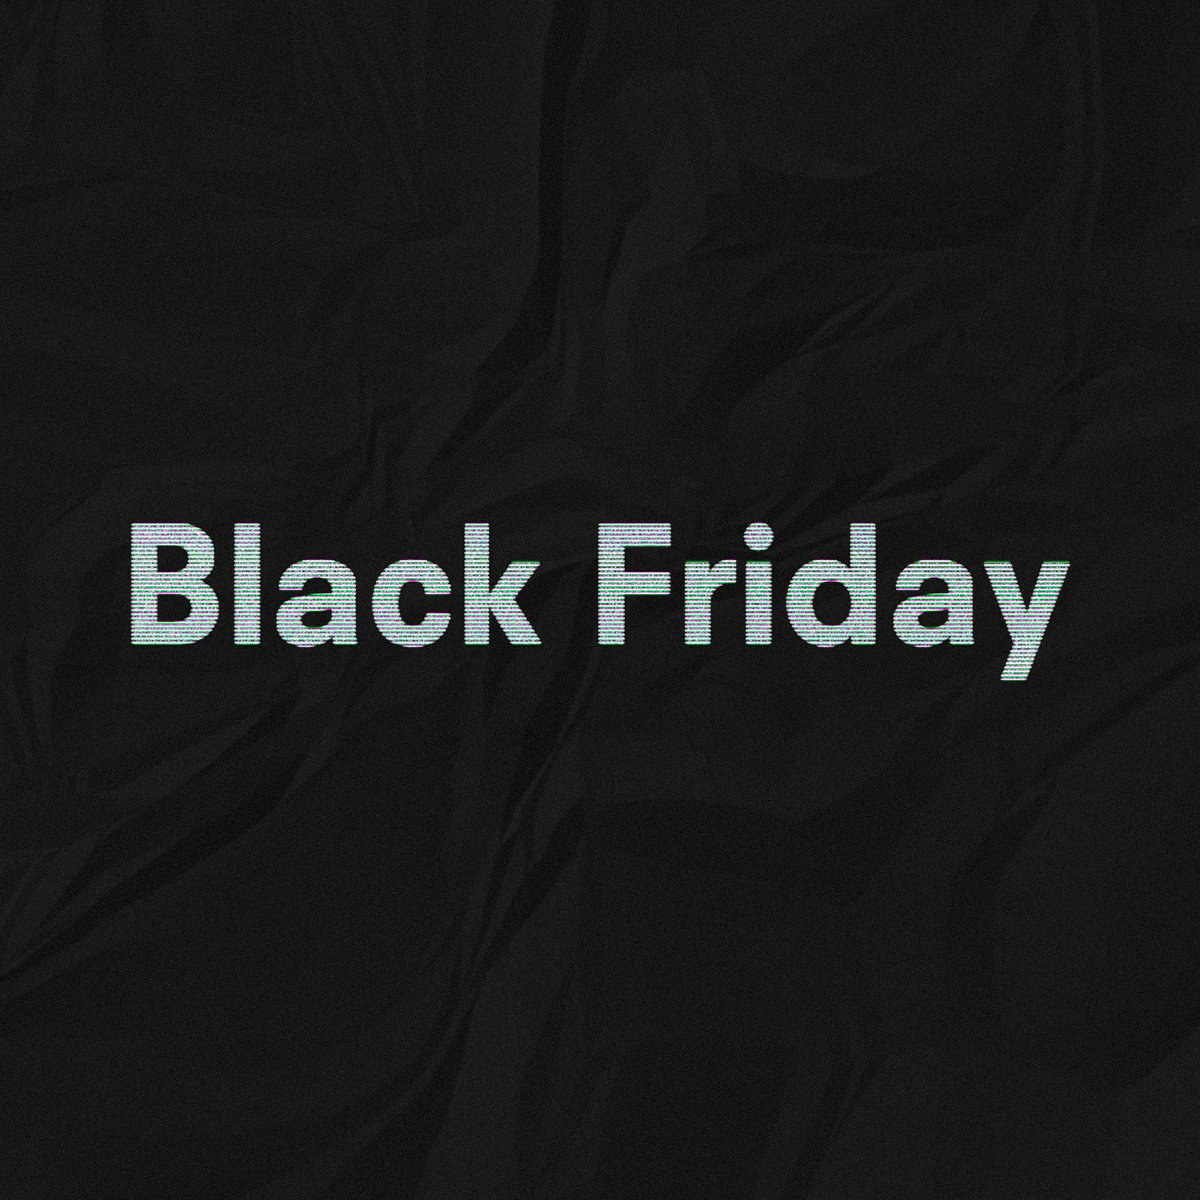 It's the beggining of our Black Friday sales !!! Enjoy up to 50% off on @rad ! https://t.co/2oZsMrIdtr #blackfriday #radshop https://t.co/bcuxybWt3O